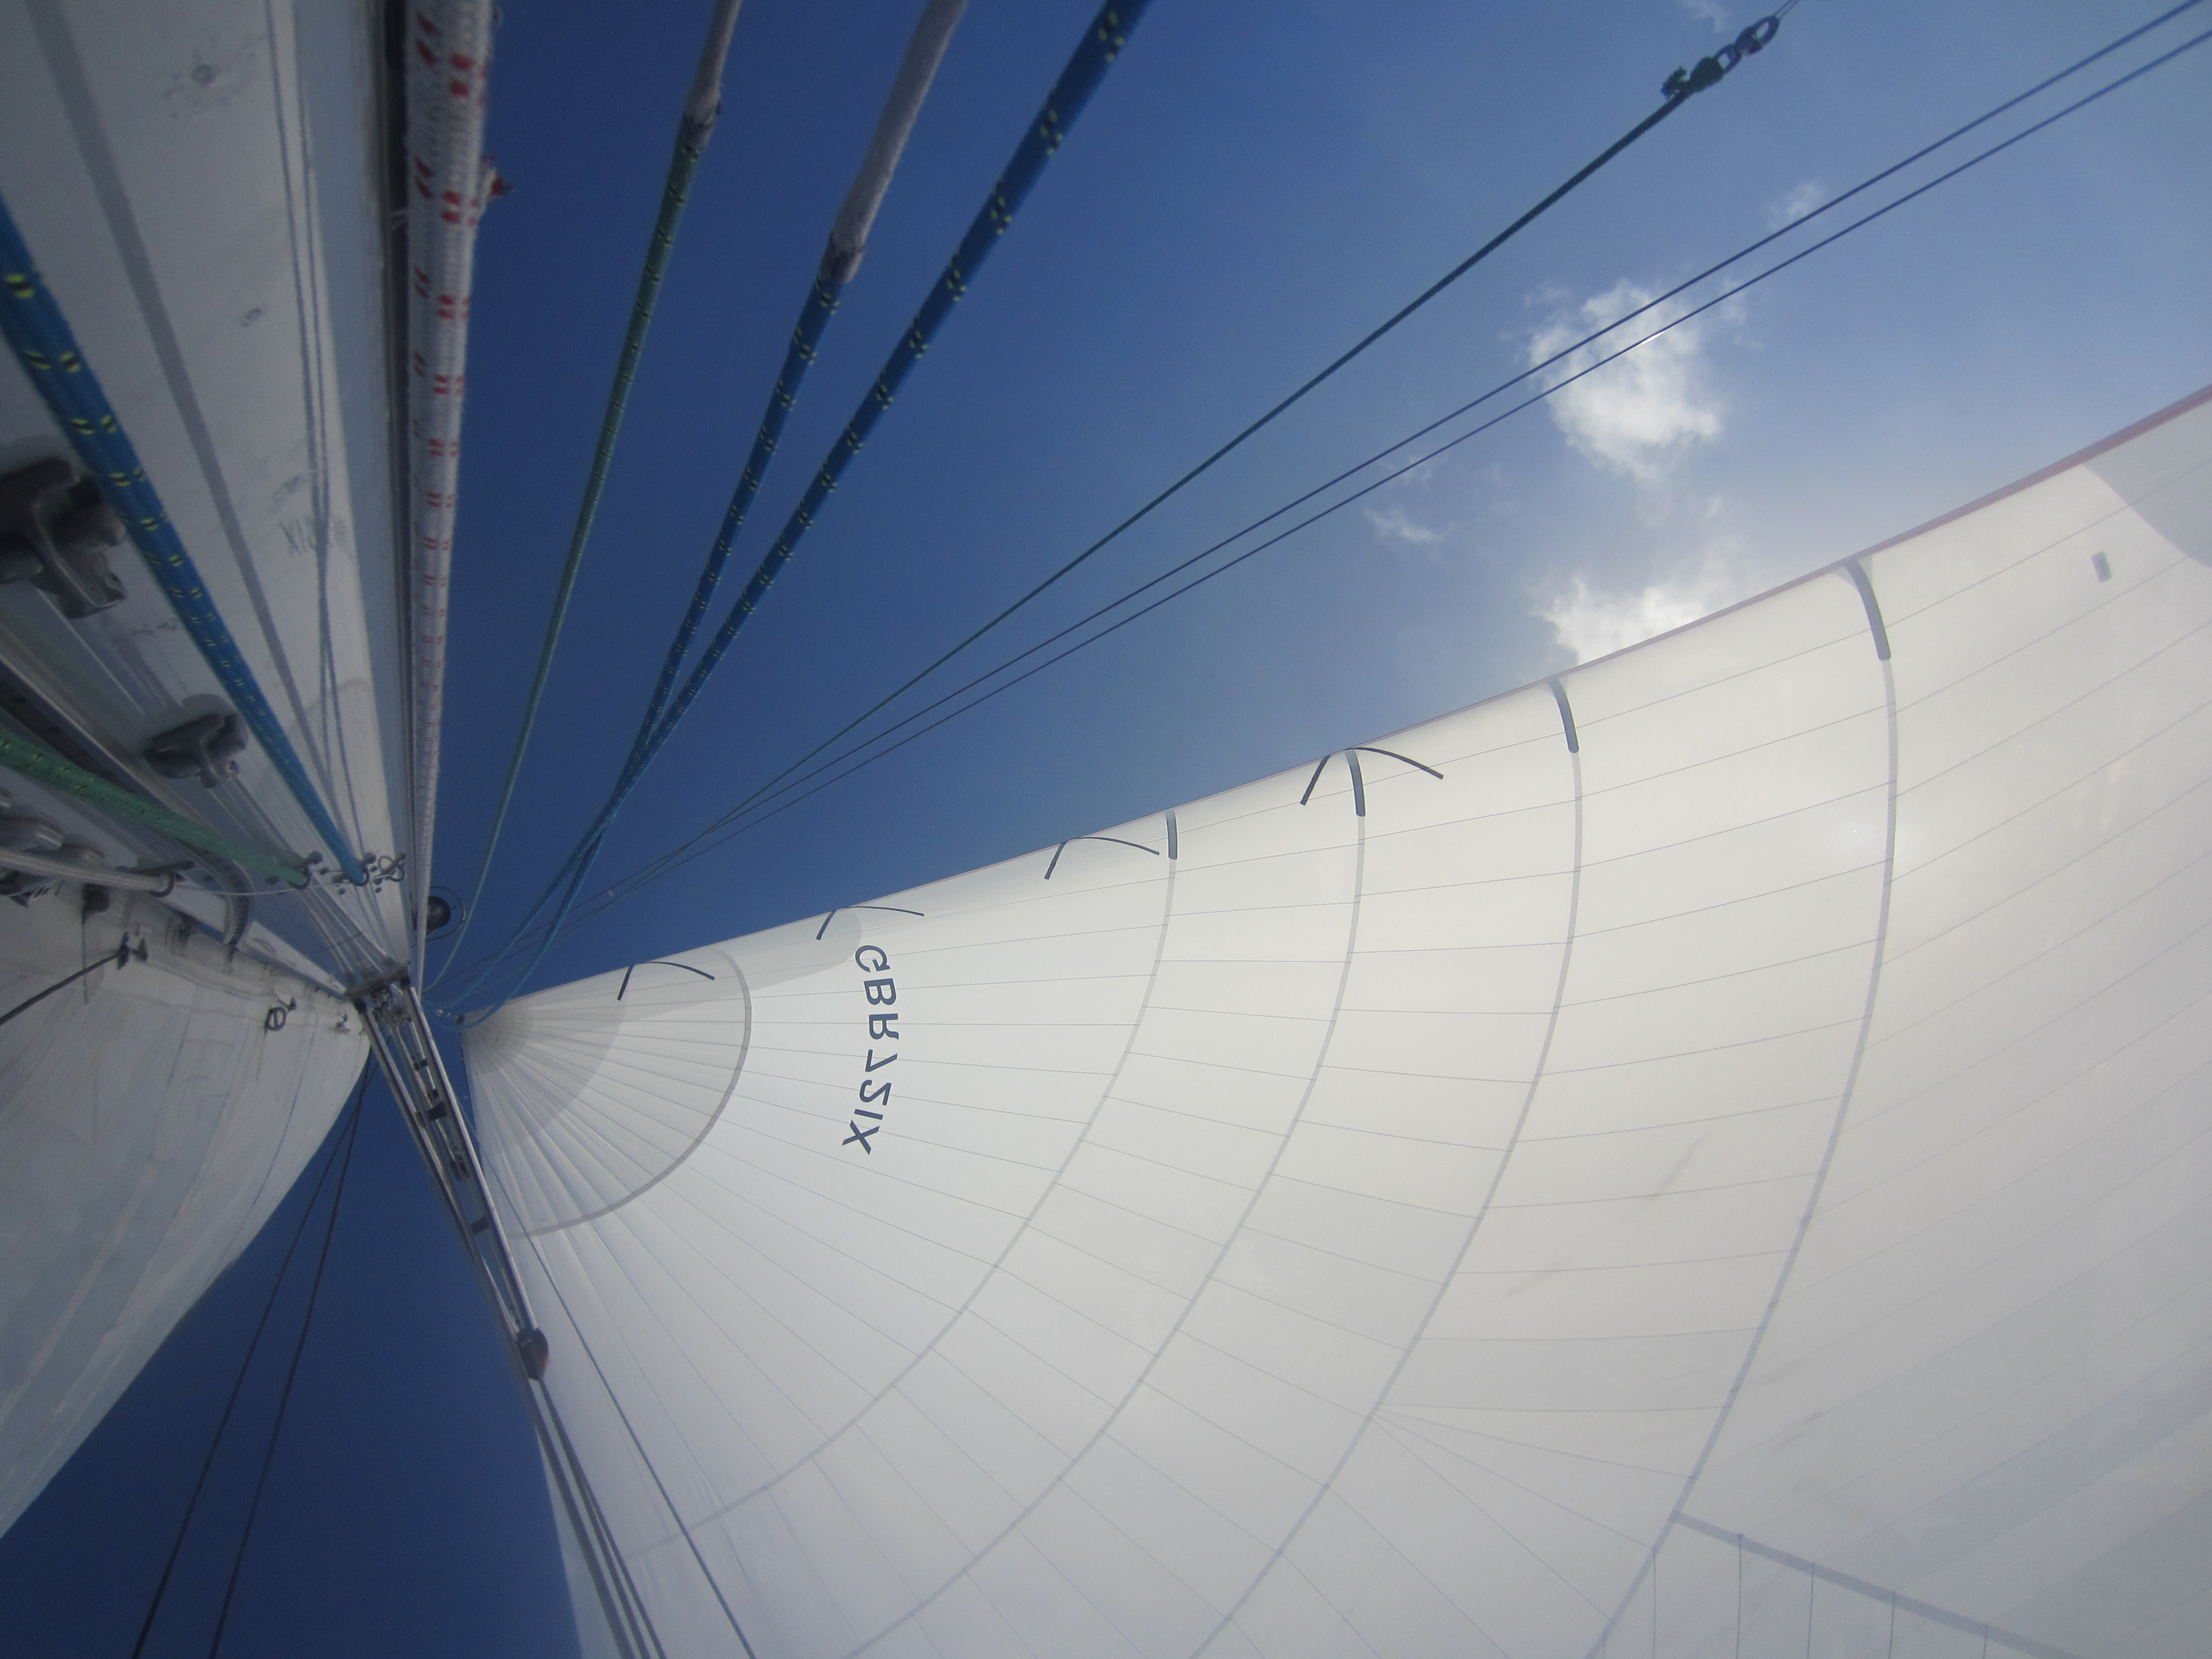 Top of a spinnaker